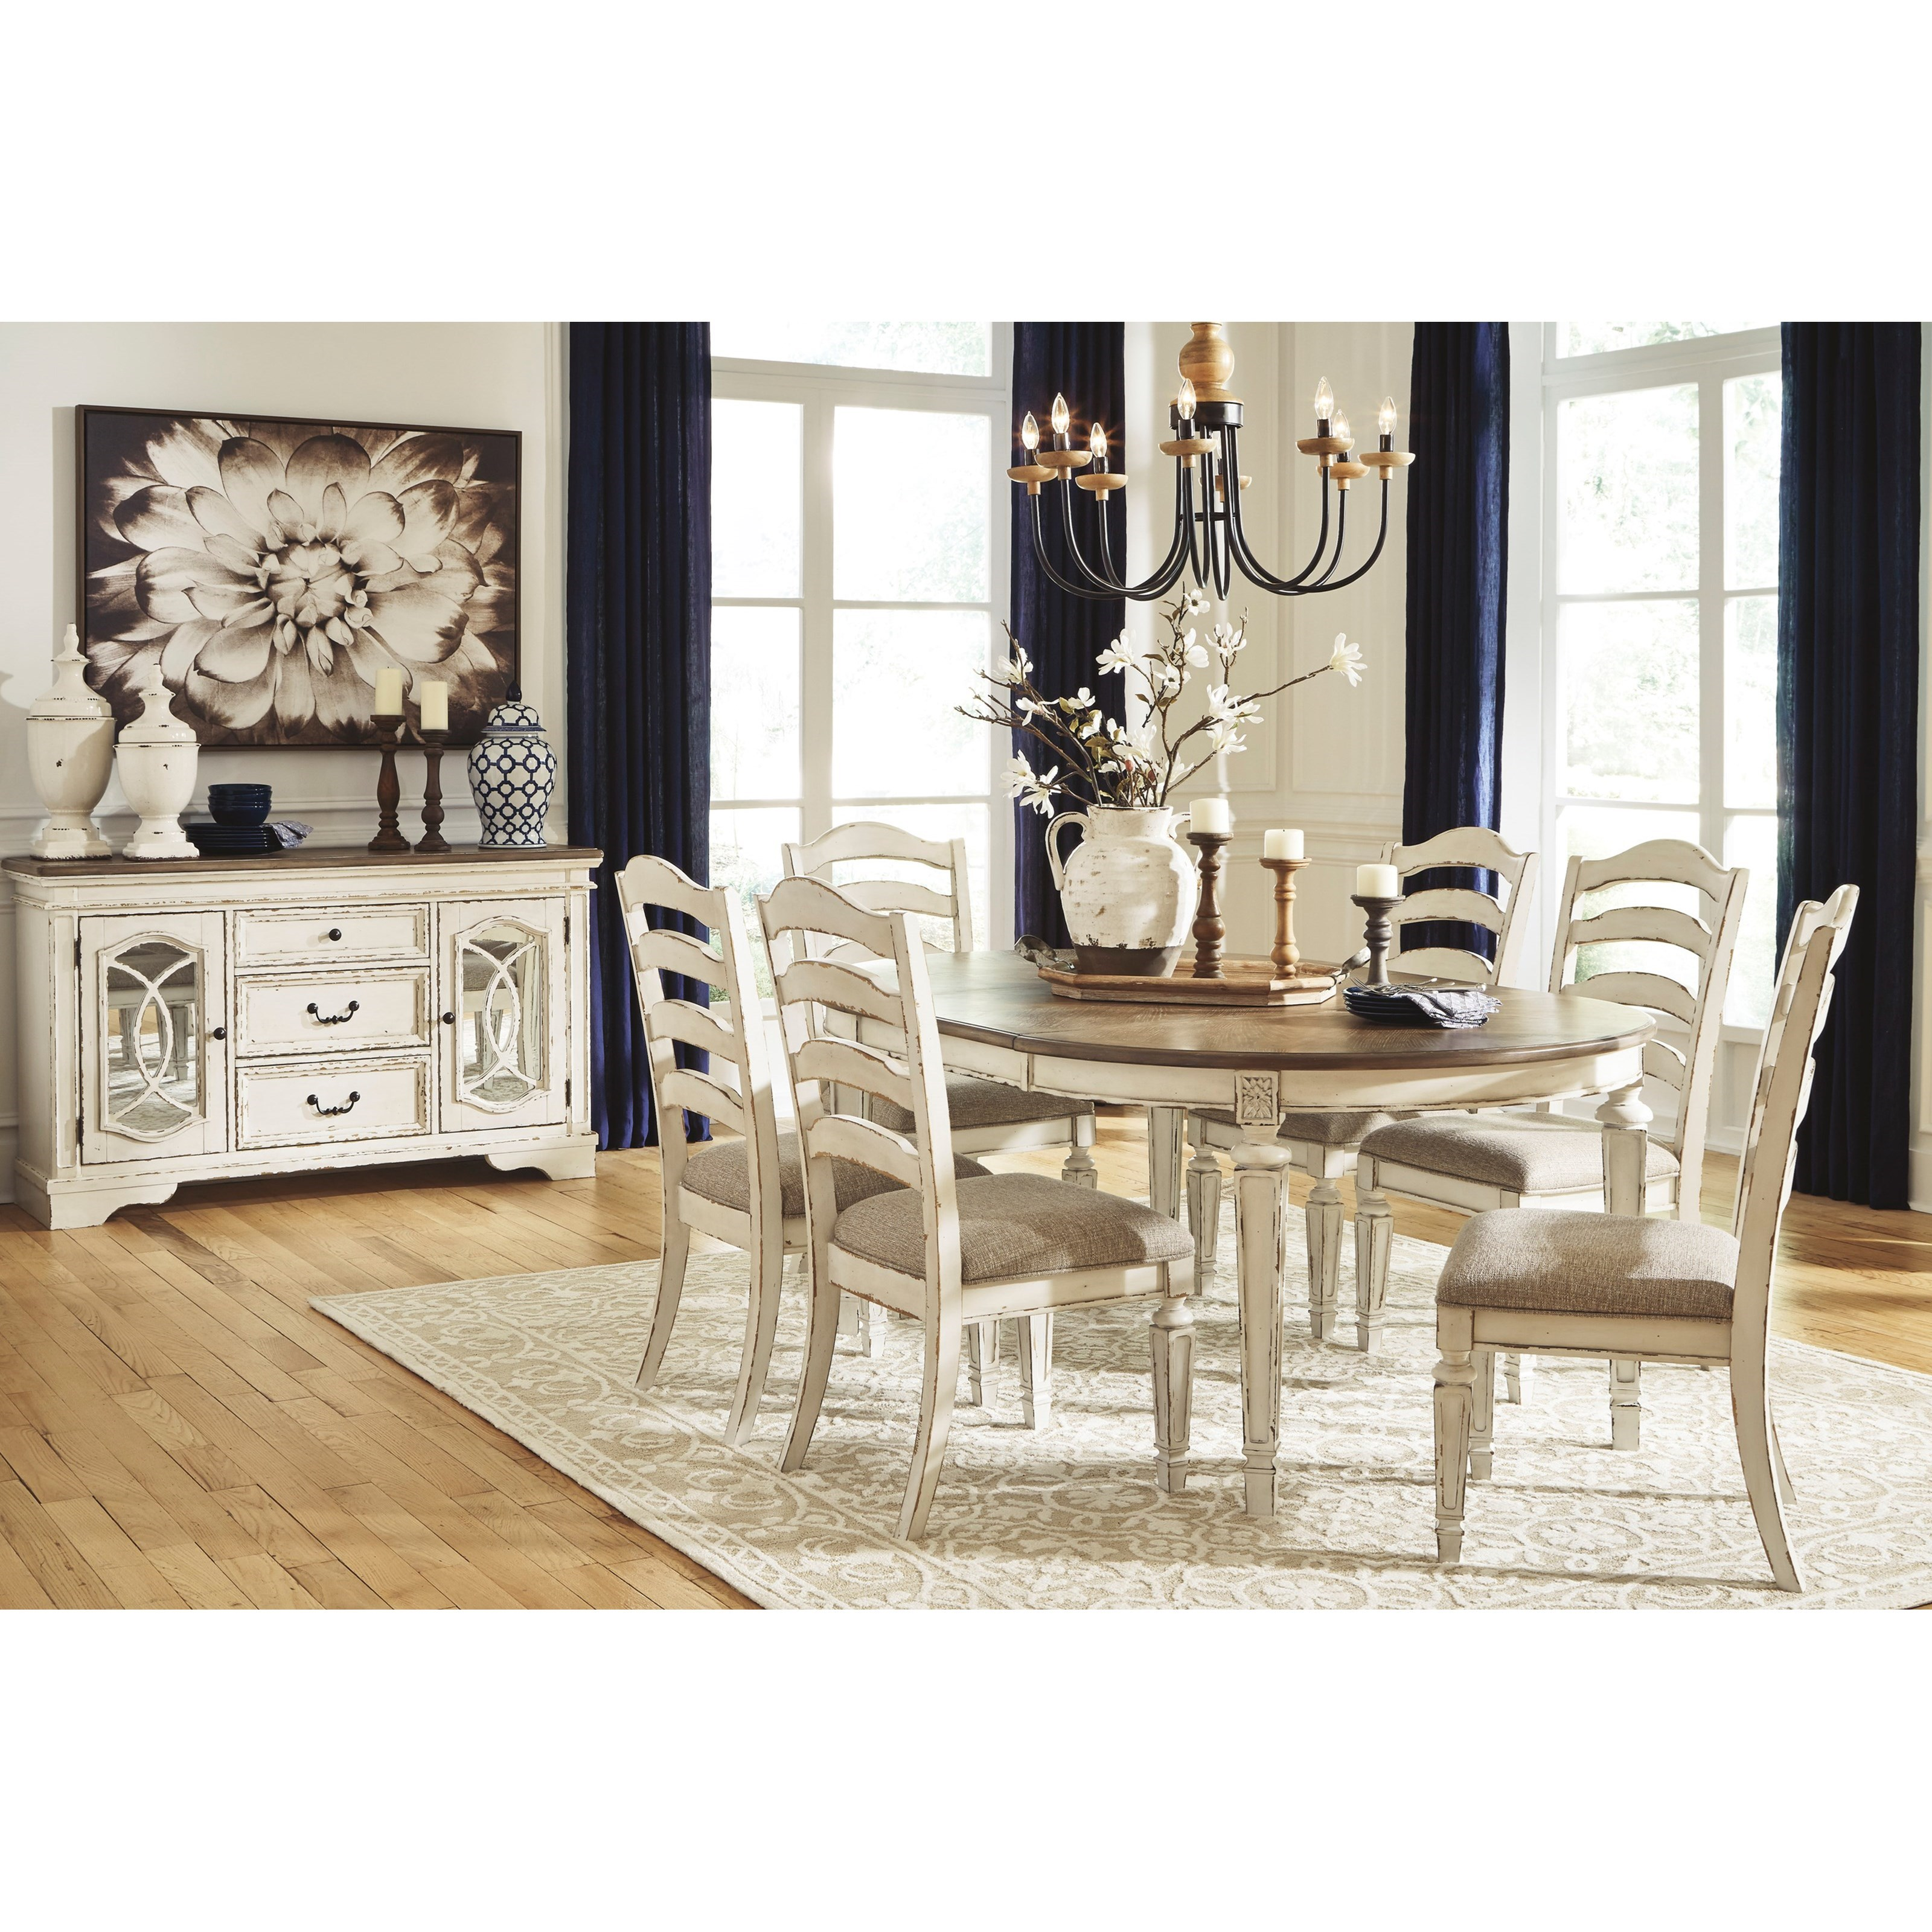 Signature Design By Ashley Realyn Formal Dining Room Group Darvin Furniture Formal Dining Room Groups